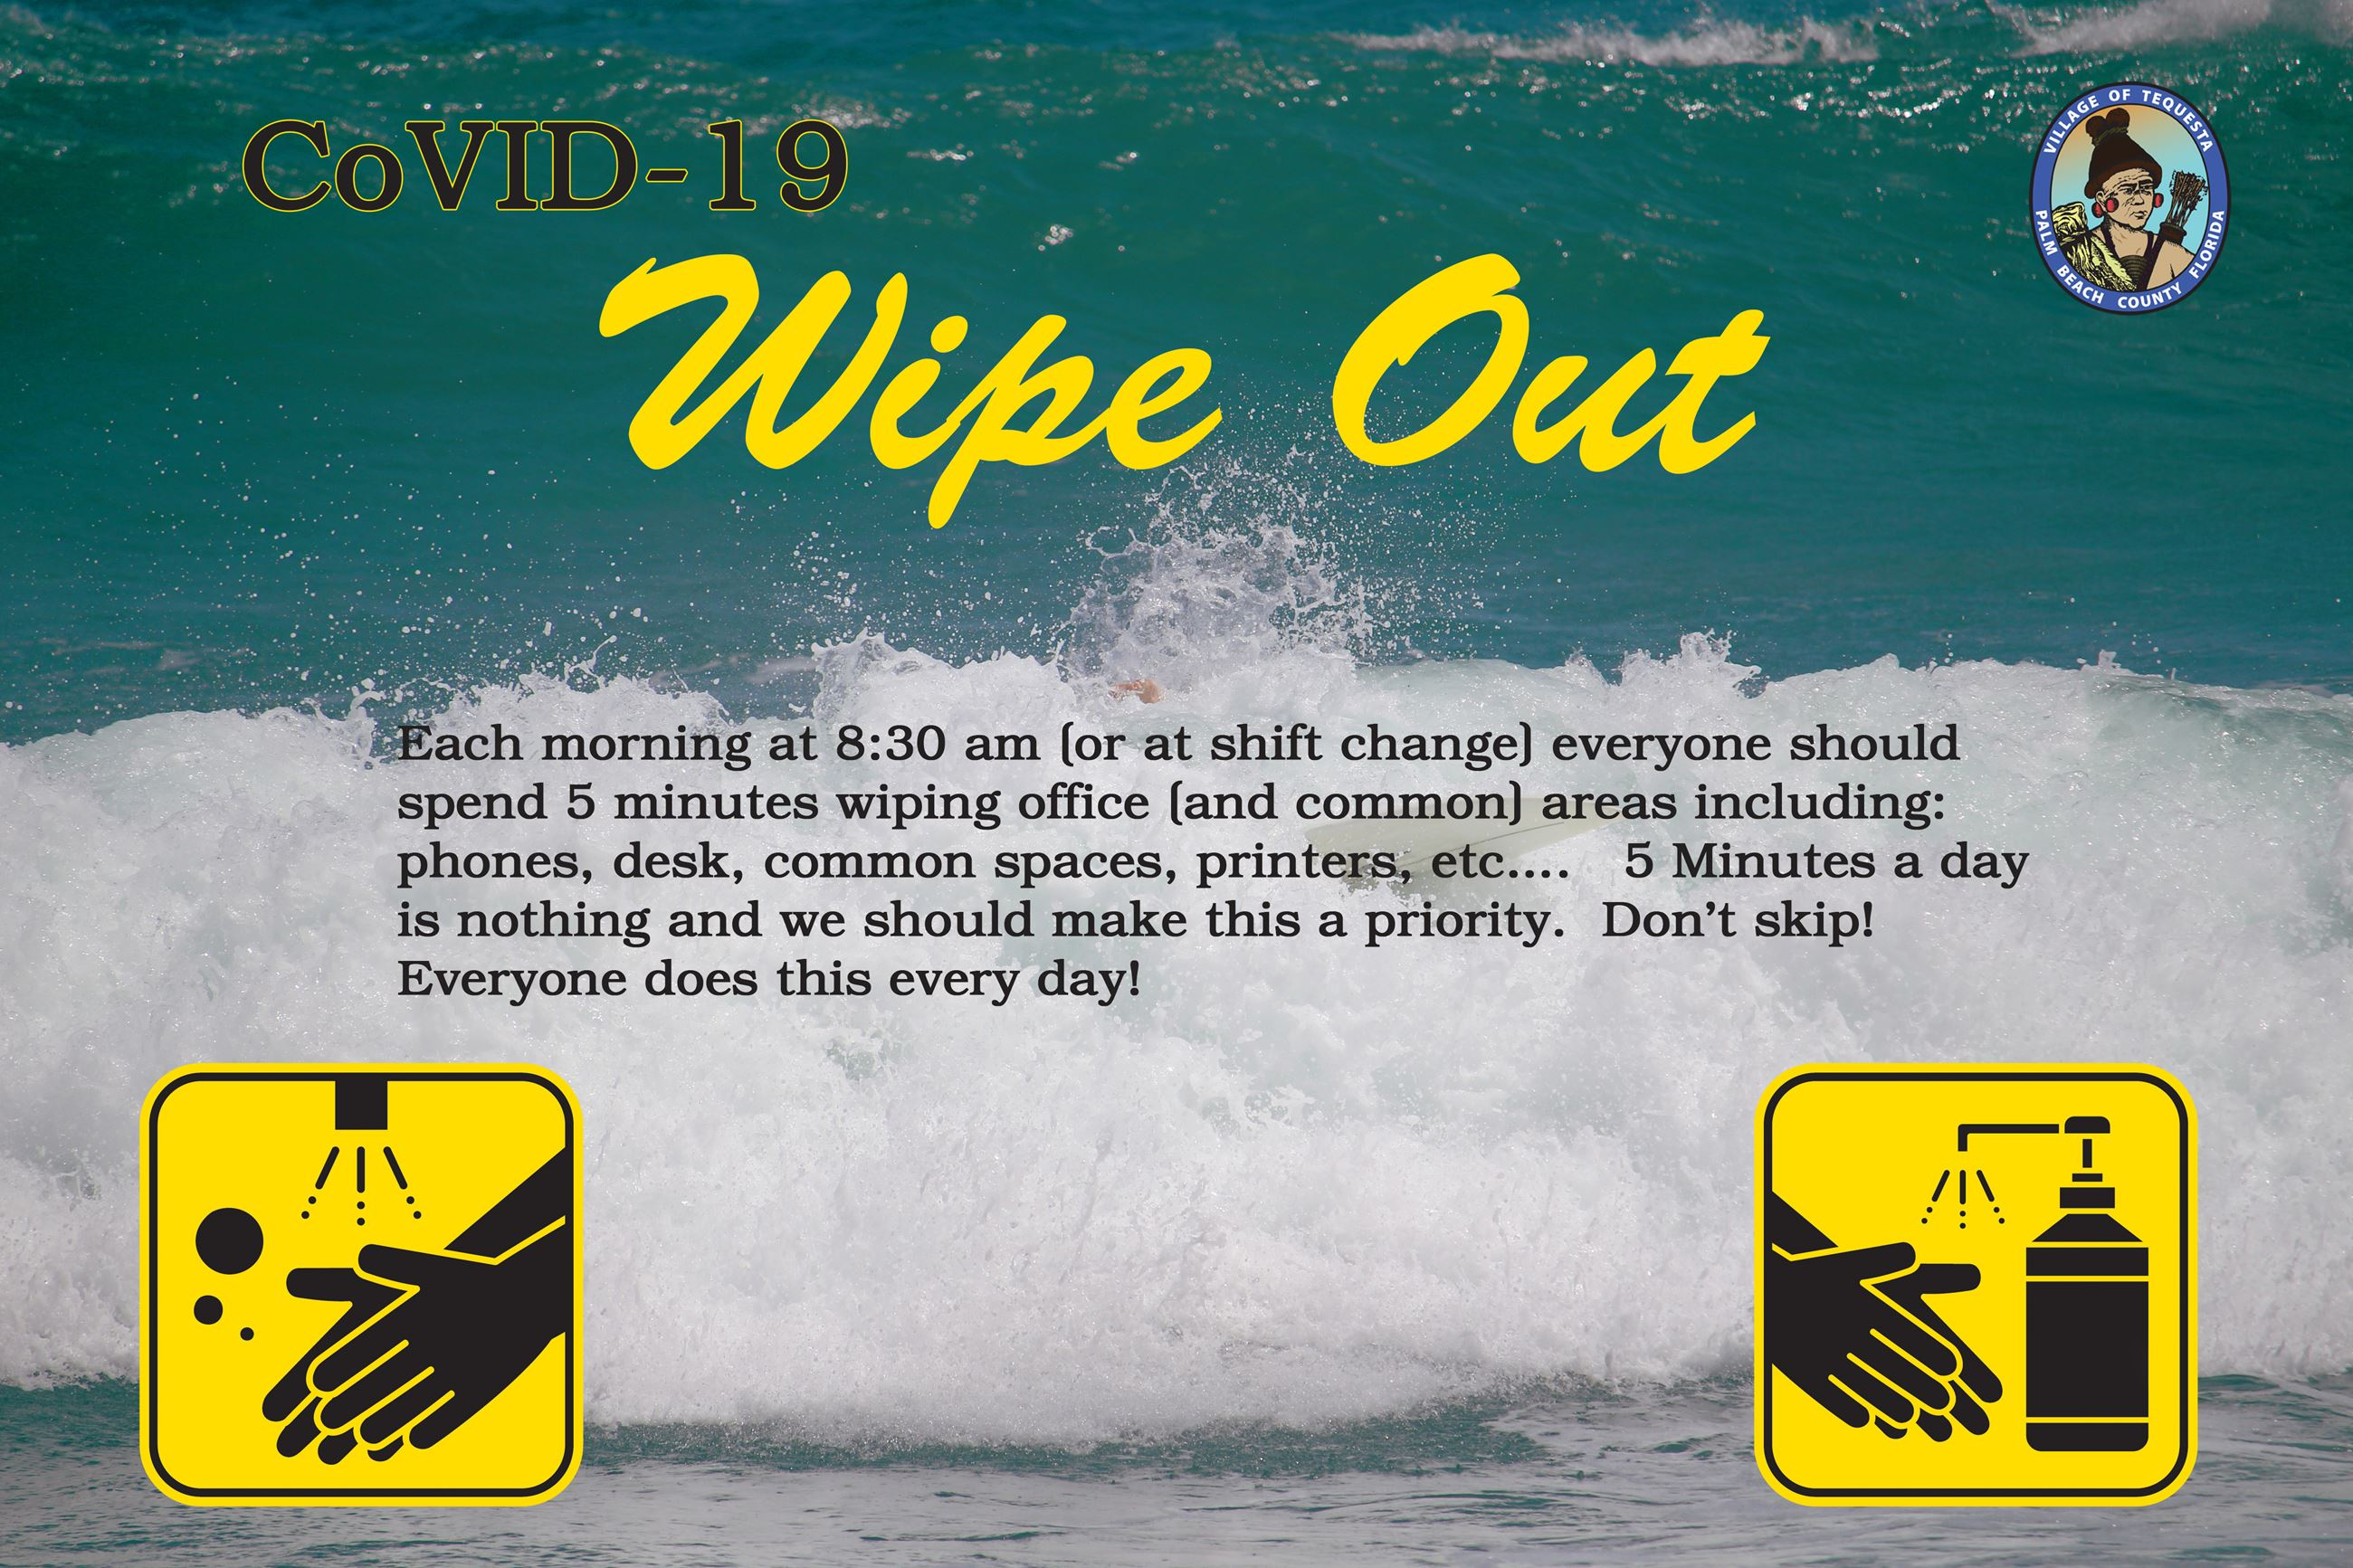 CoVid-19 Wipe Out